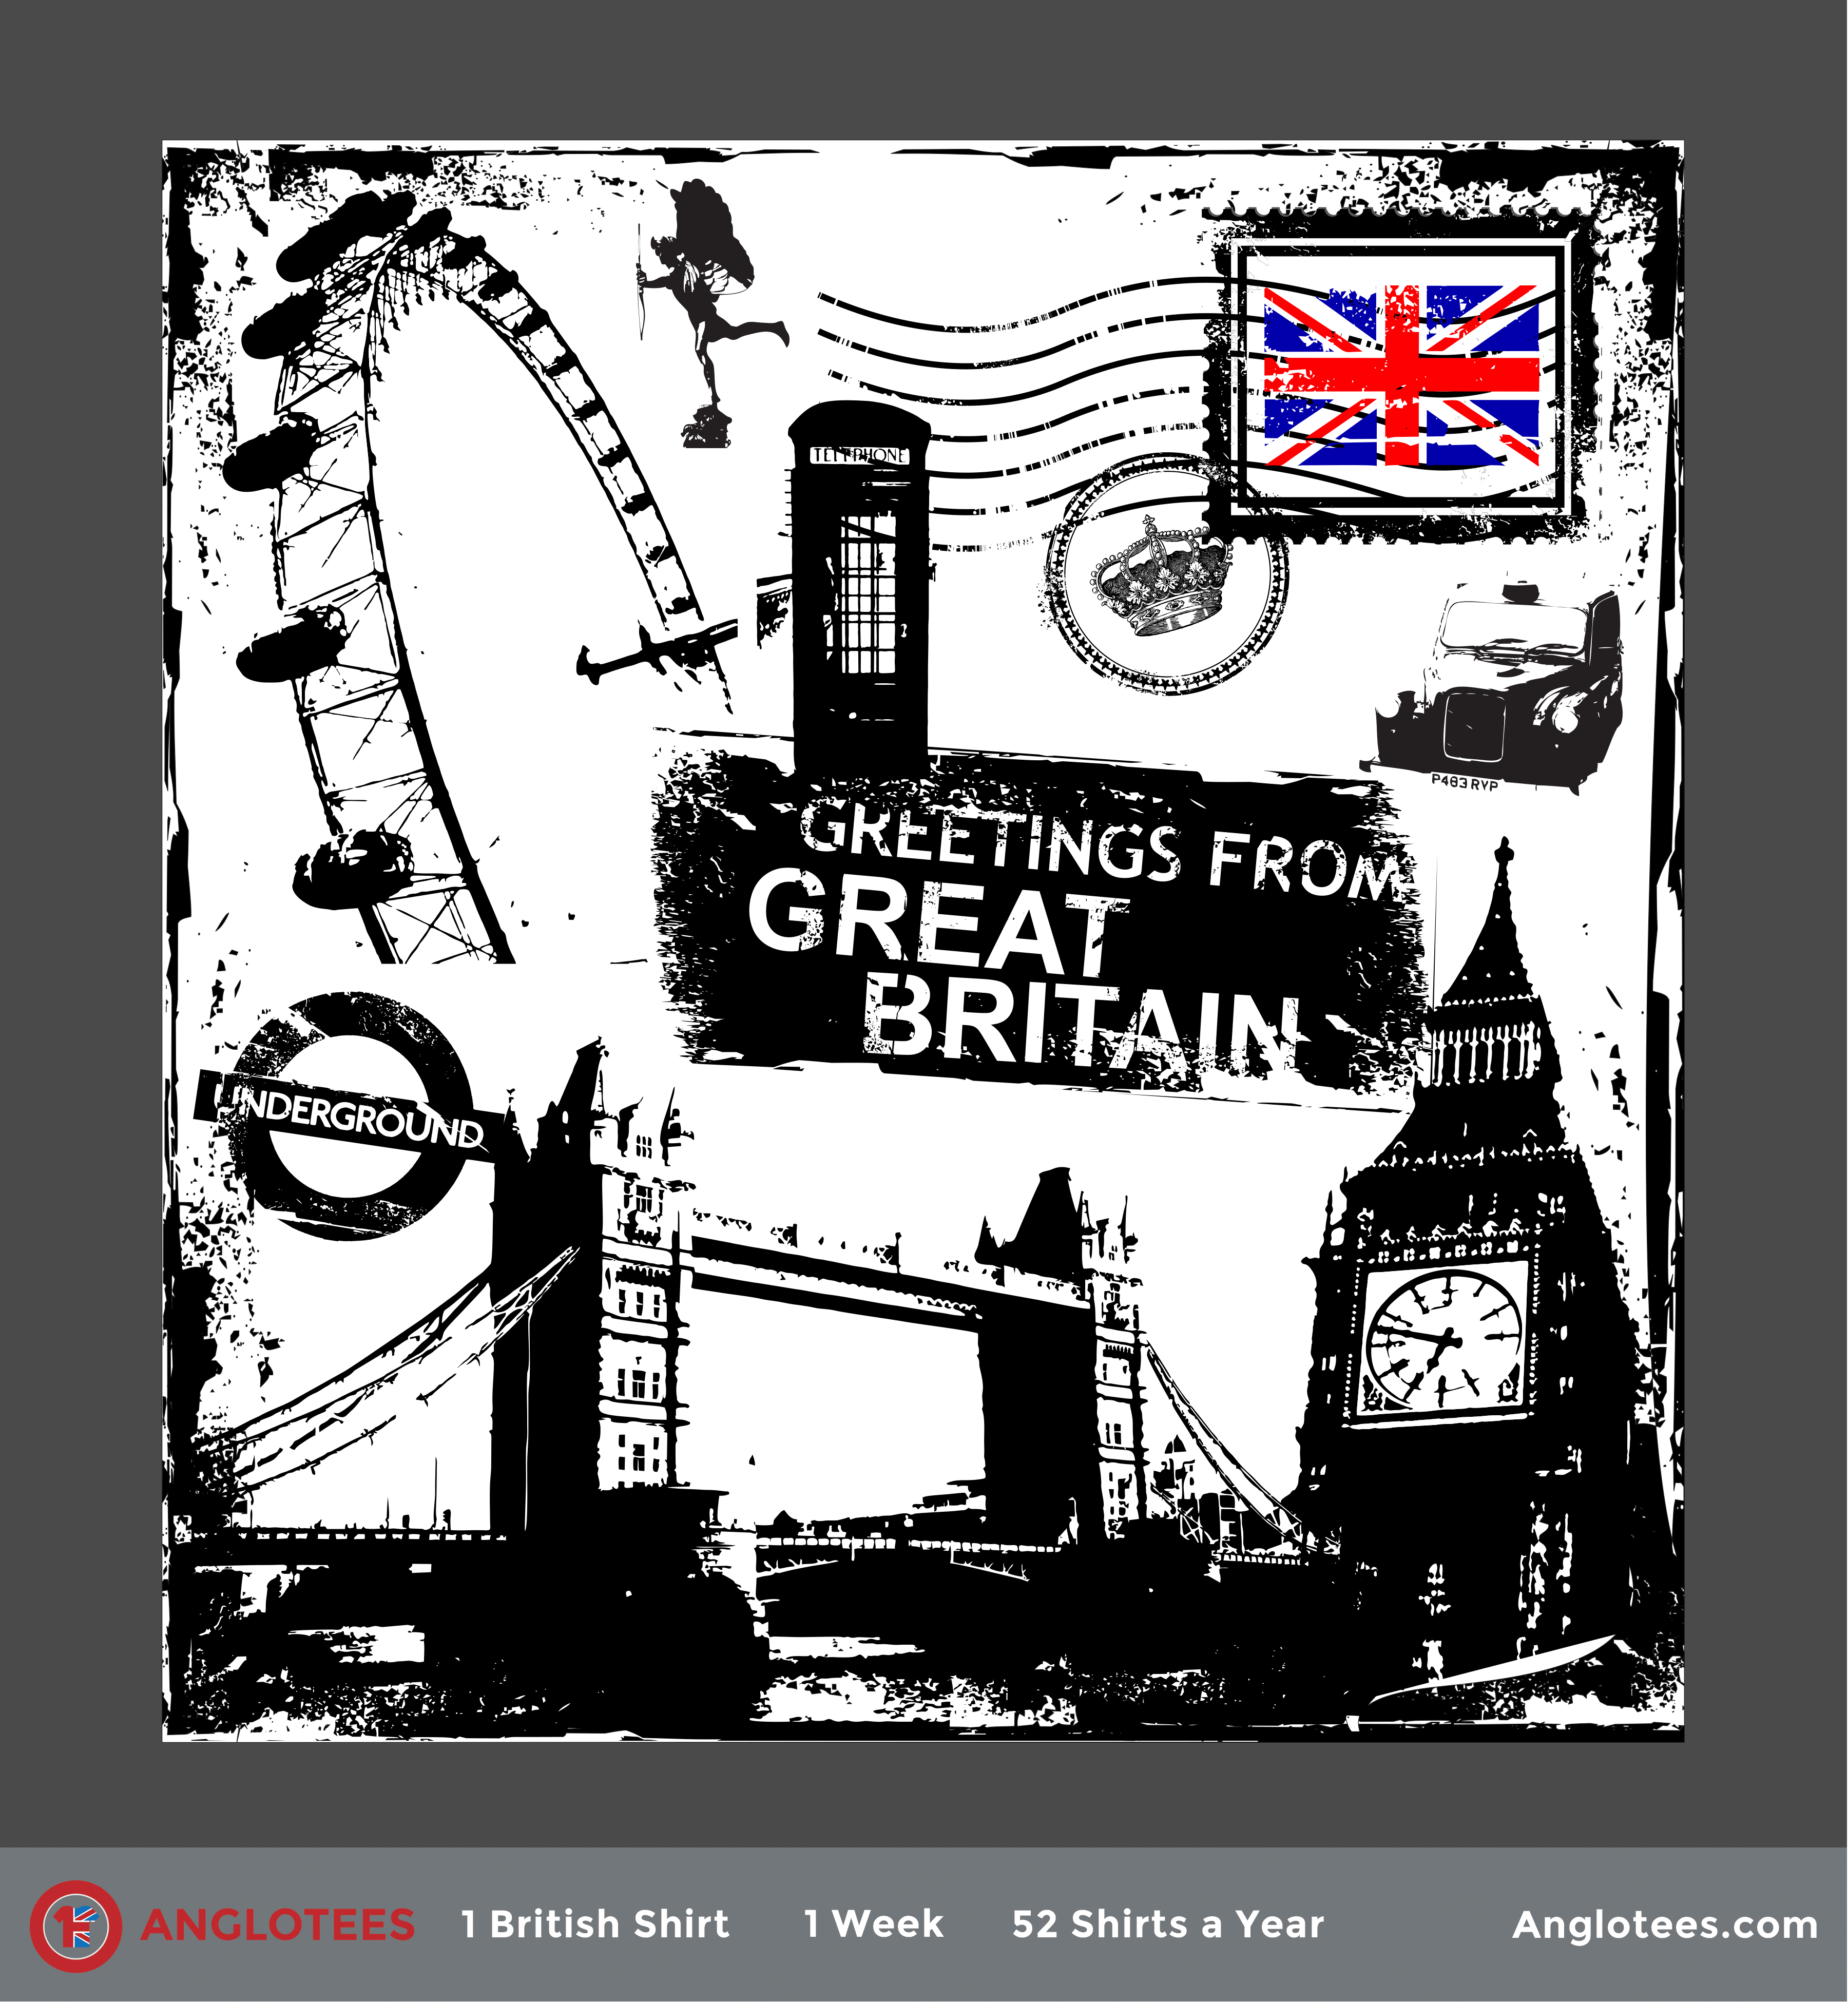 London Alert New Shirt Live Greetings From Great Britain Londontopia